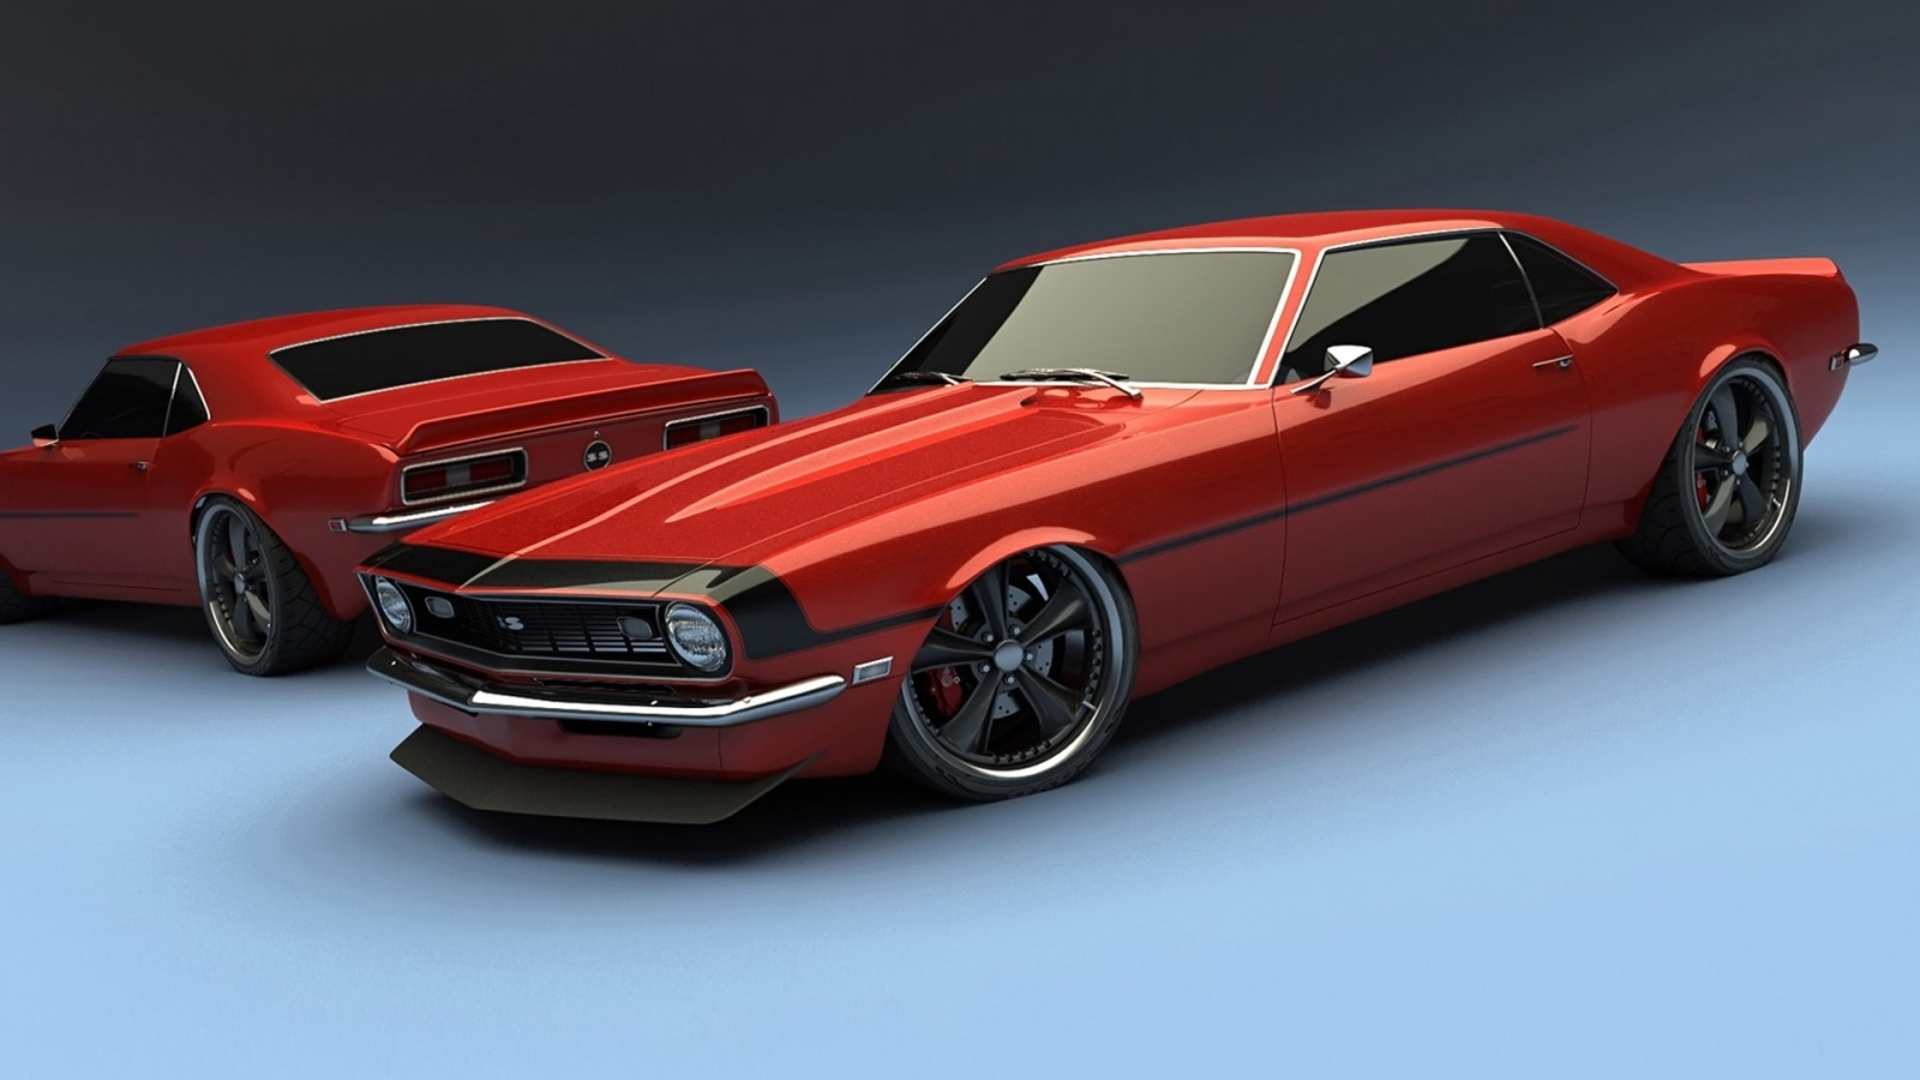 Muscle Cars Hd Wallpapers 2254 Wallpaper Wallpaper hd 1920x1080